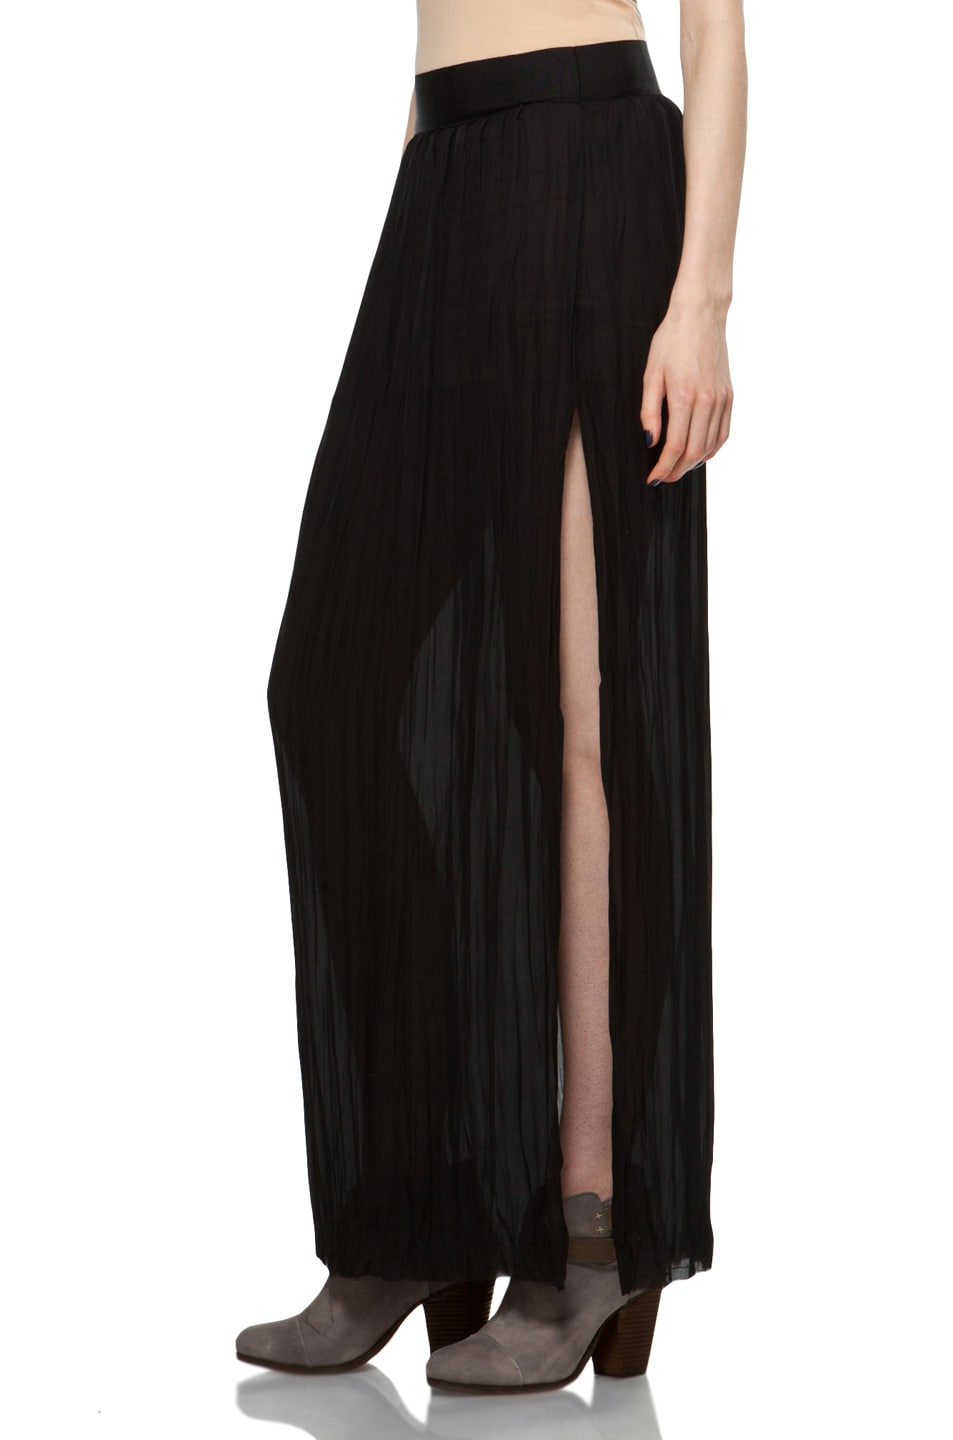 Image 2 of Nili Lotan Wrinkled Skirt in Black